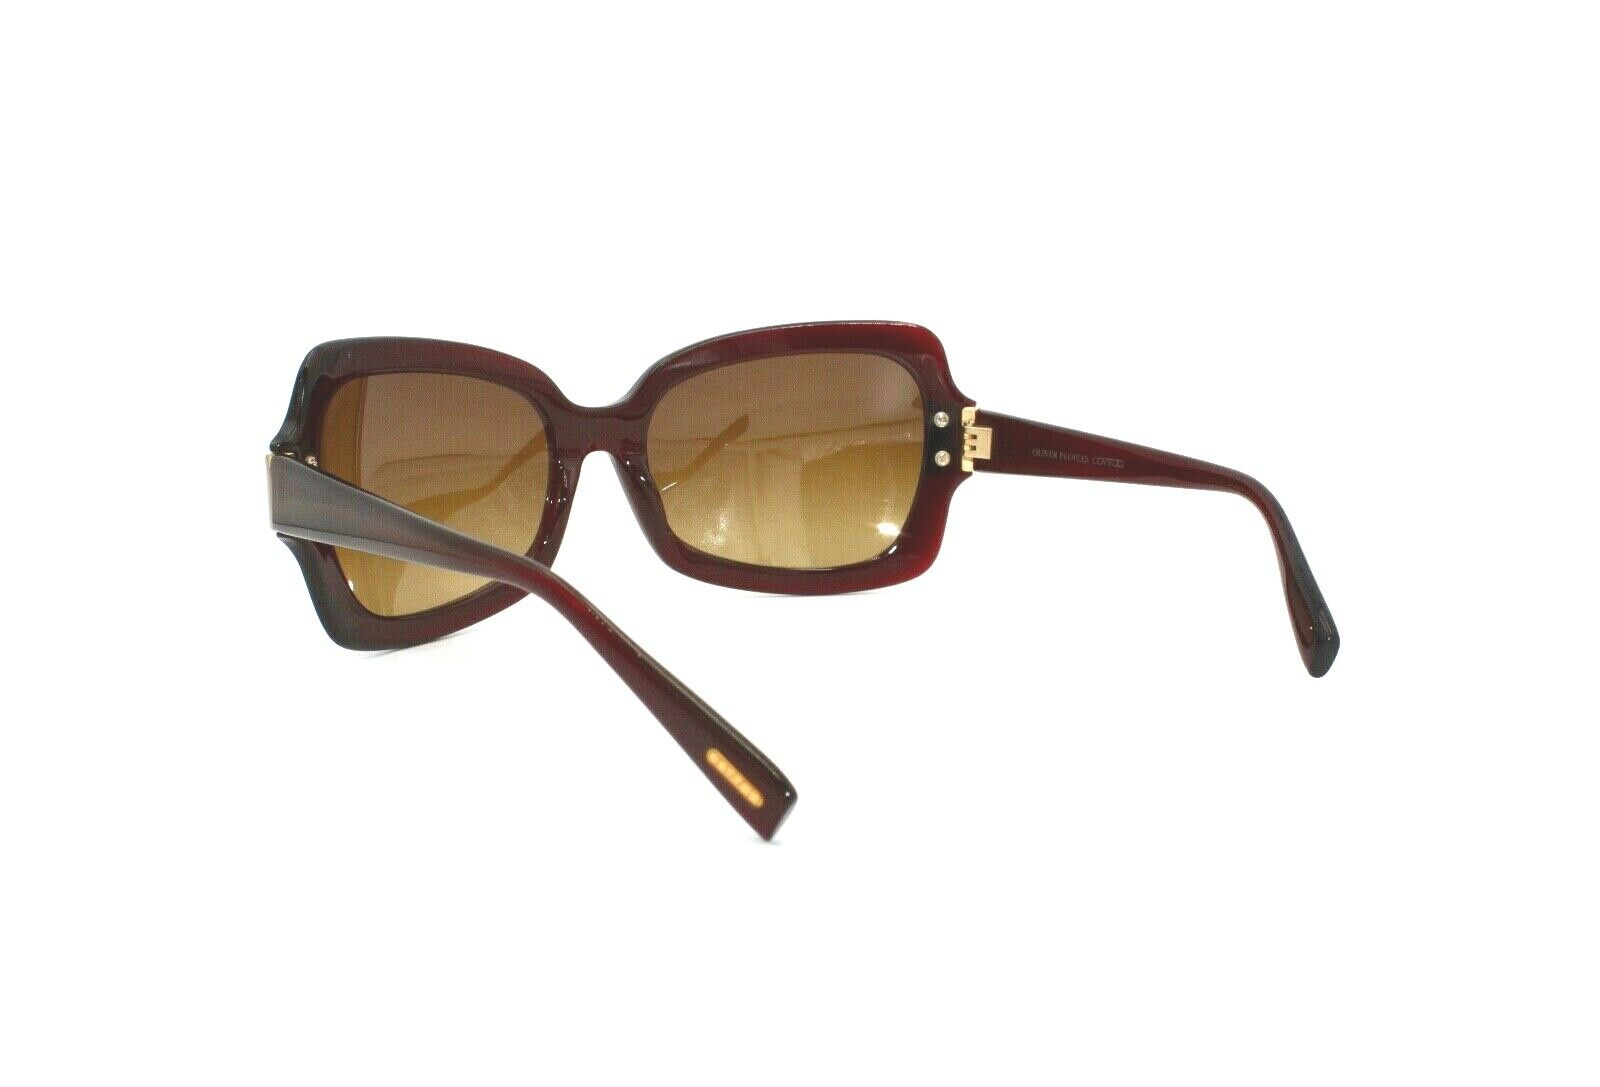 Oliver Peoples Sunglasses 59 19-130 Vilette SI Polarized Made in Japan - Mydesigneroptic